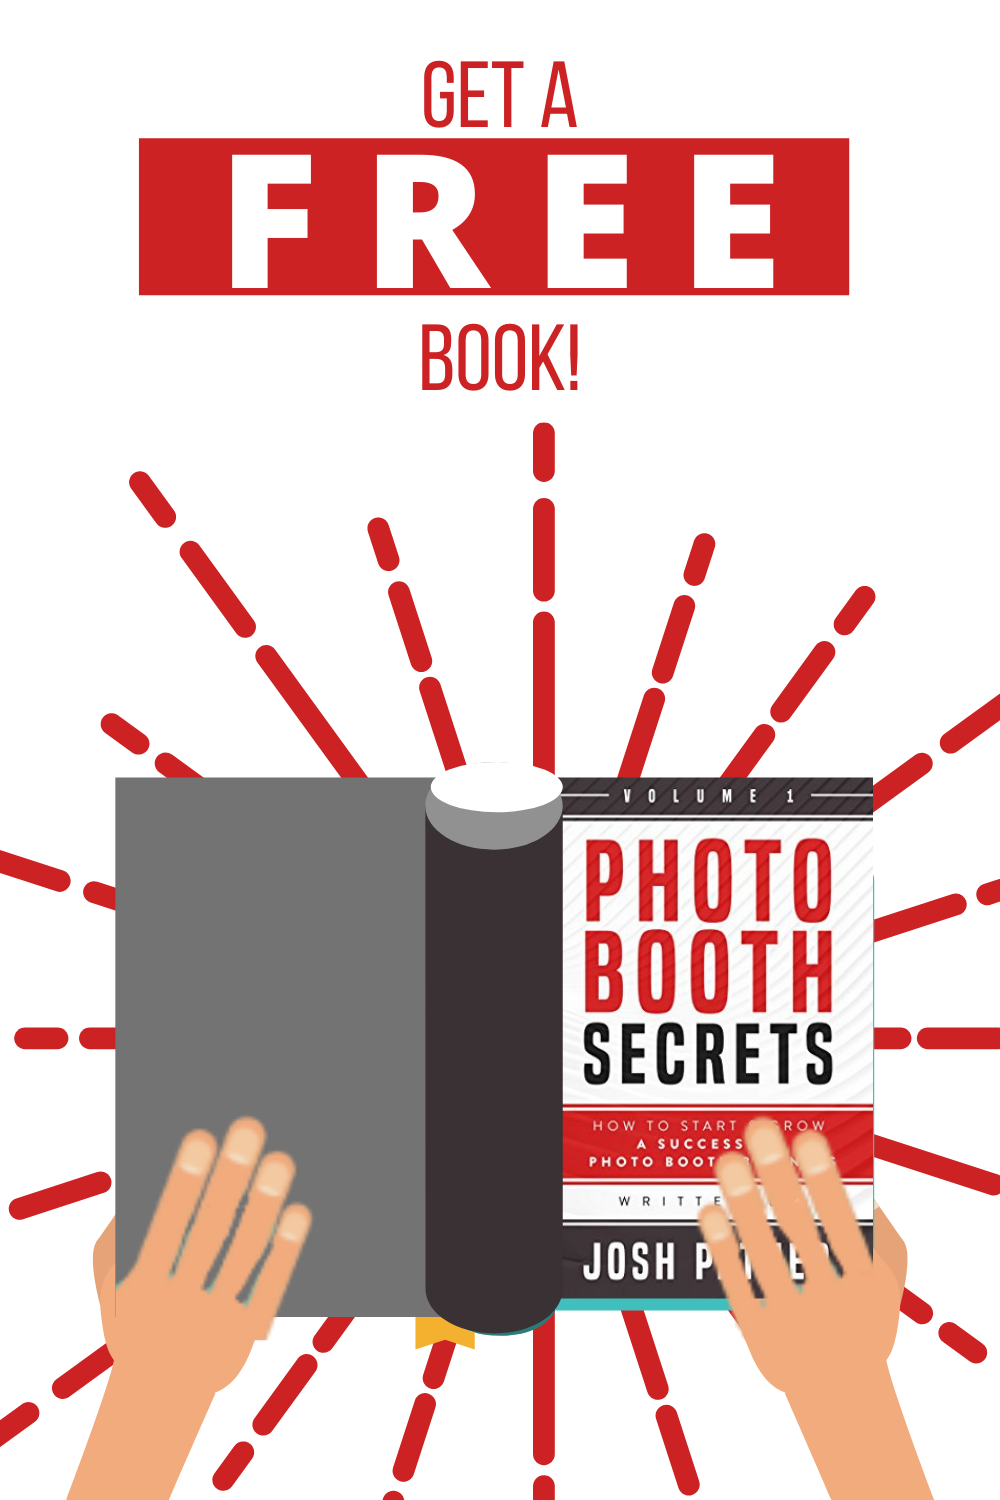 Get Your Free Book Now Free Books Photo Booth Business Books